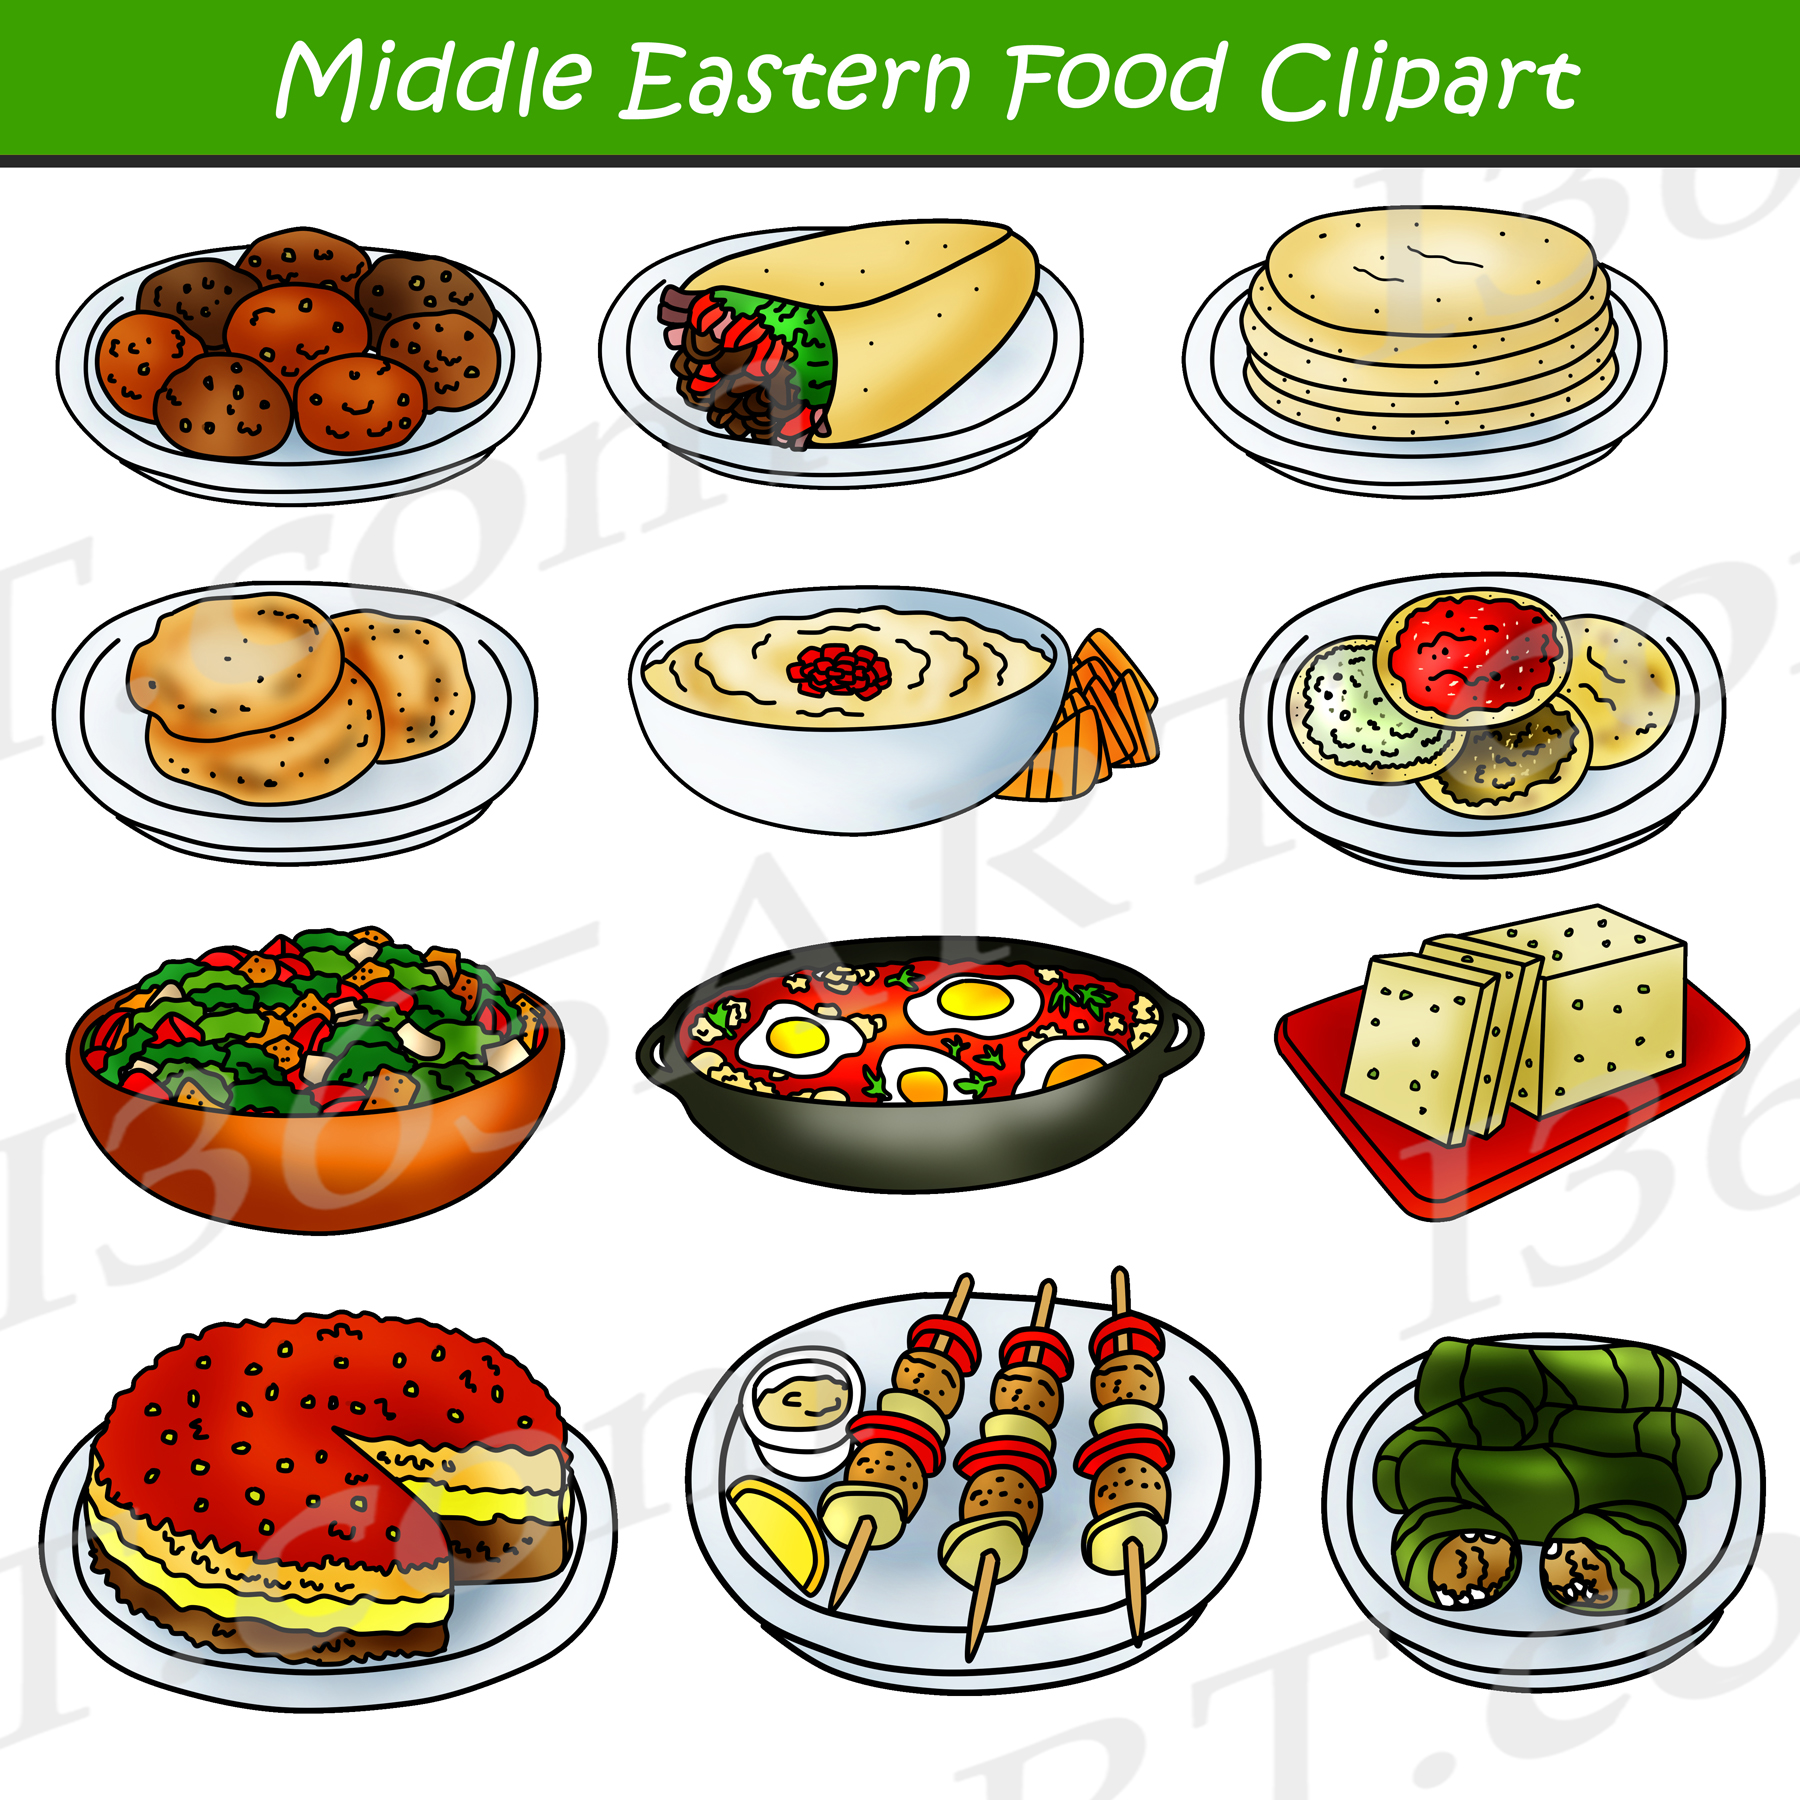 Middle Eastern Food Clipart.